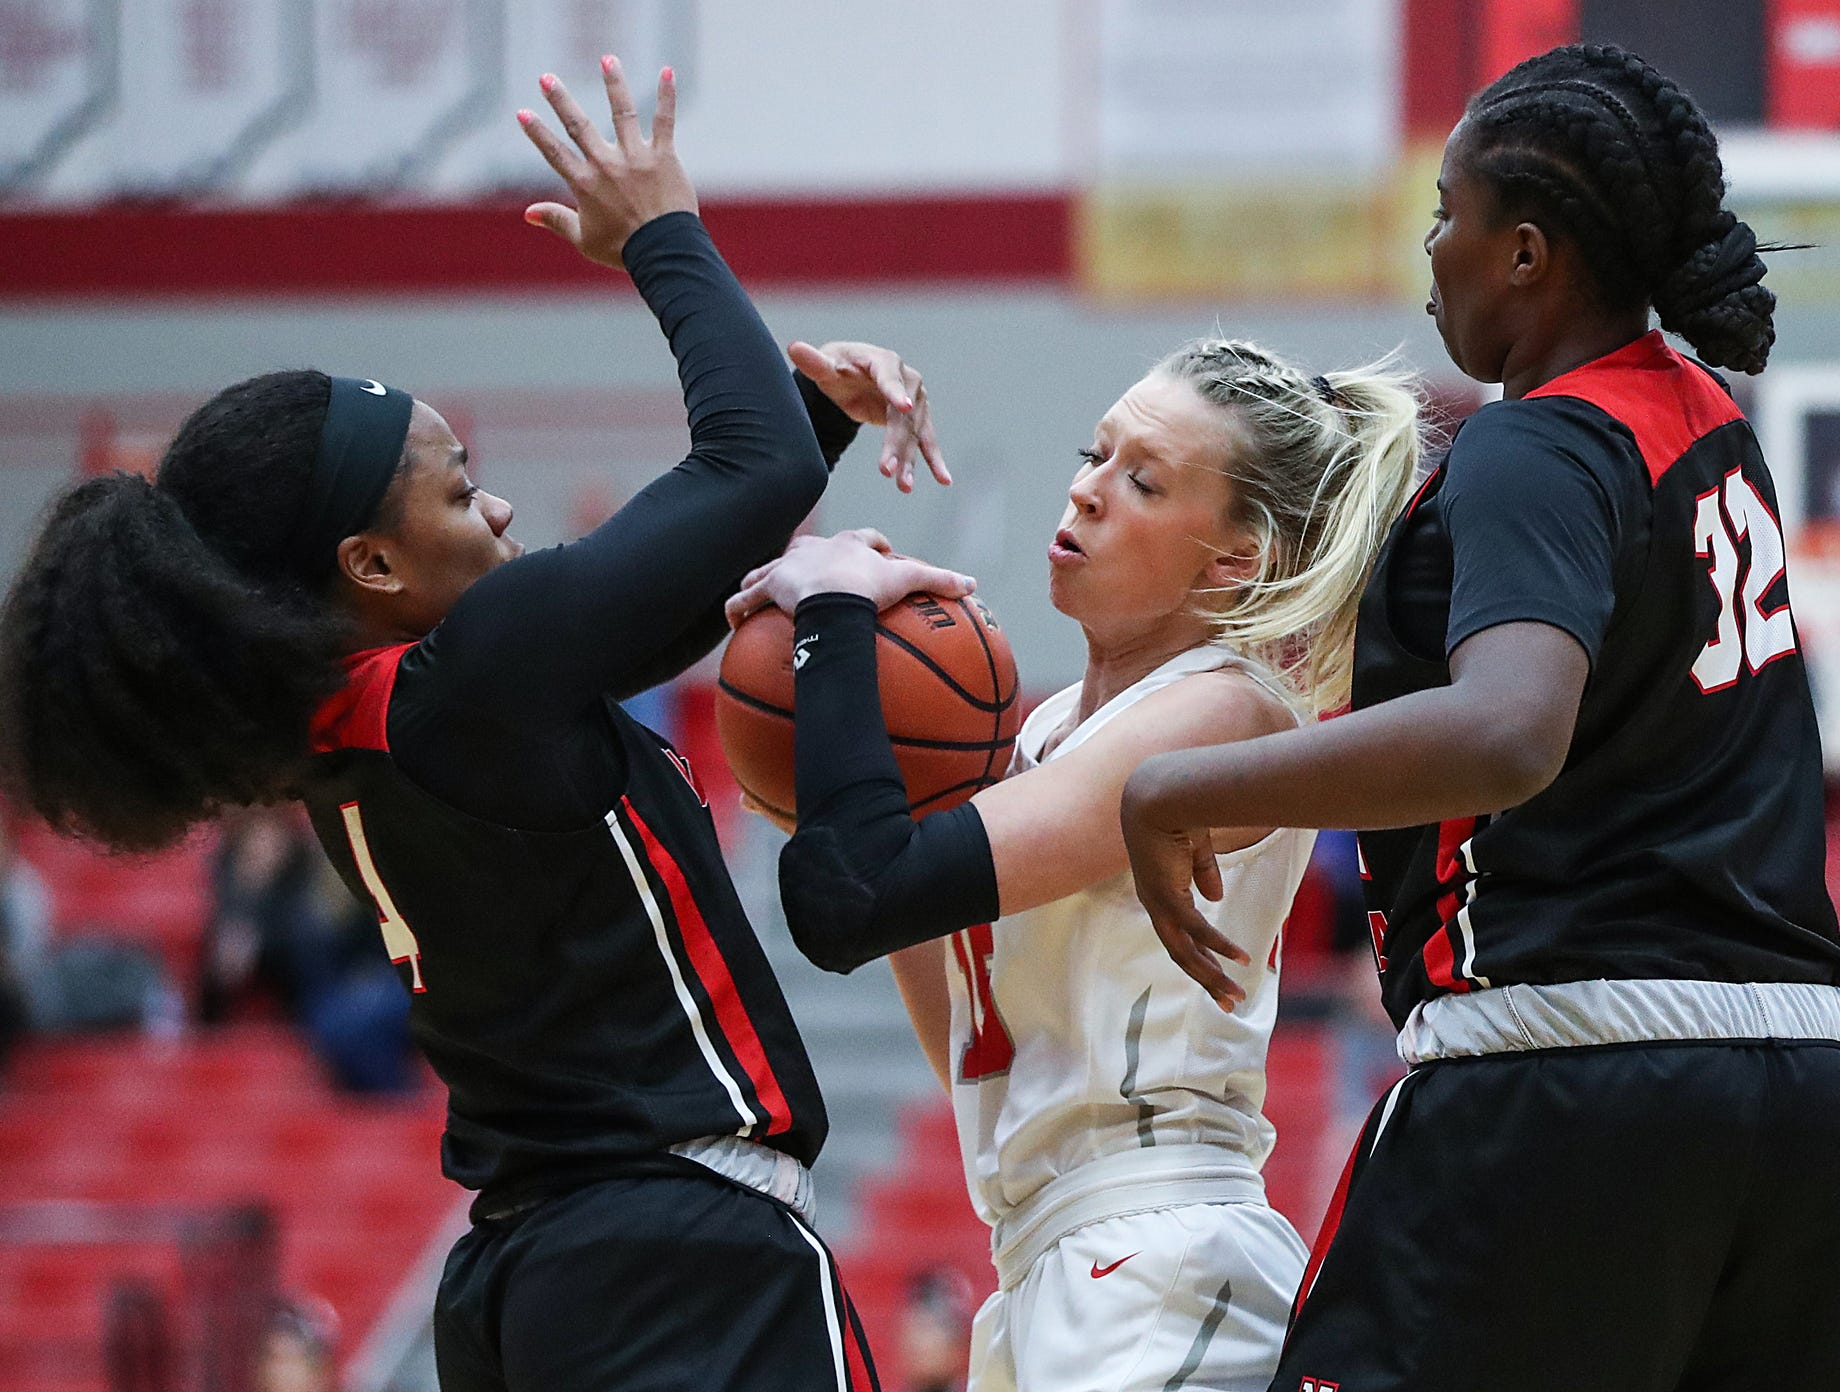 North Central Panthers Savaya Brockington (4) and Nakaih Hunter (32) surround Center Grove Trojans forward Kylie Storm (15) in the first half of the game at Center Grove High School in Greenwood, Ind., Thursday, Jan. 10, 2019. Center Grove defeated North Central, 51-44.